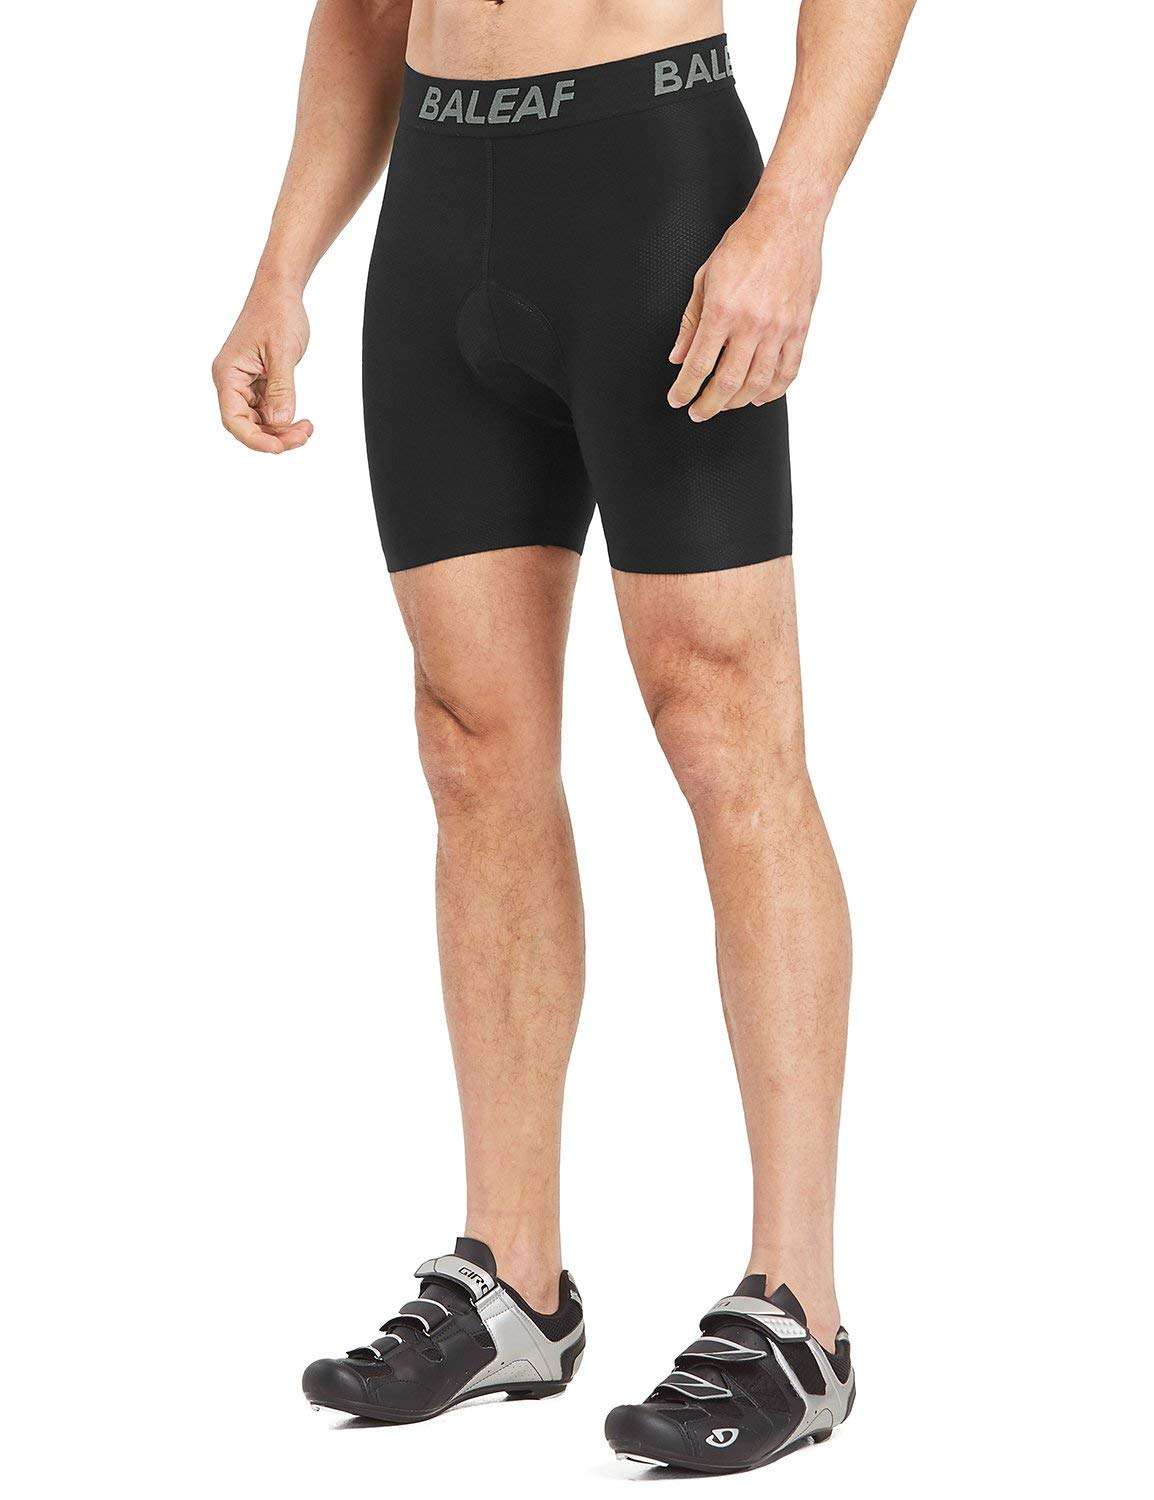 BALEAF Men's 3D Padded Cycling Mesh Breathable Underwear Shorts Tights Gray Size XL by BALEAF